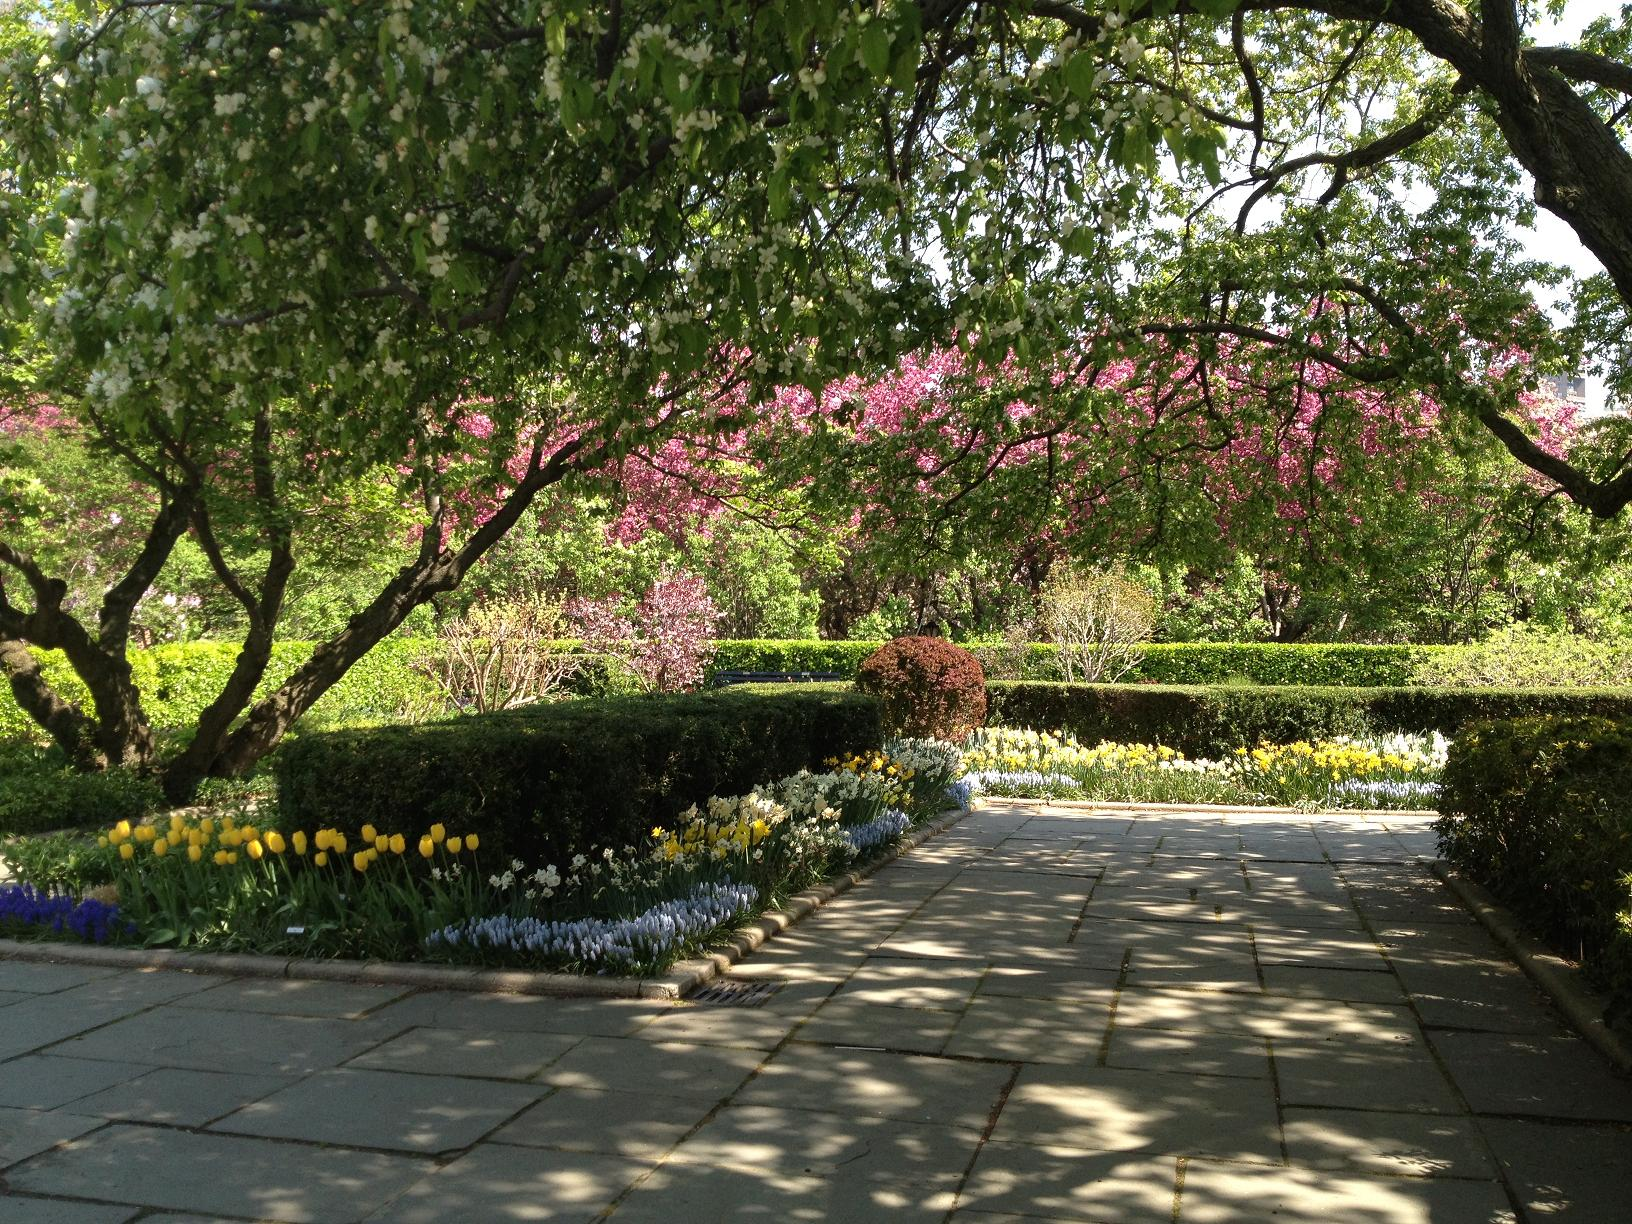 CENTRAL PARK CONSERVANCY GARDEN 1